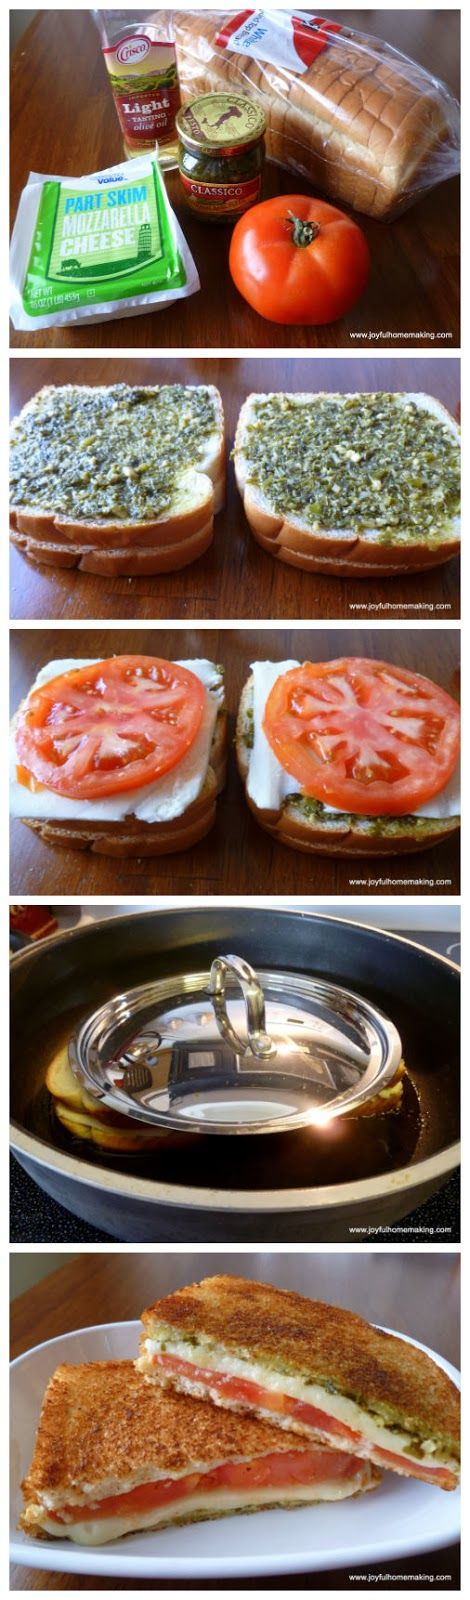 Latest Food: Grilled Cheese with Tomato and Pesto